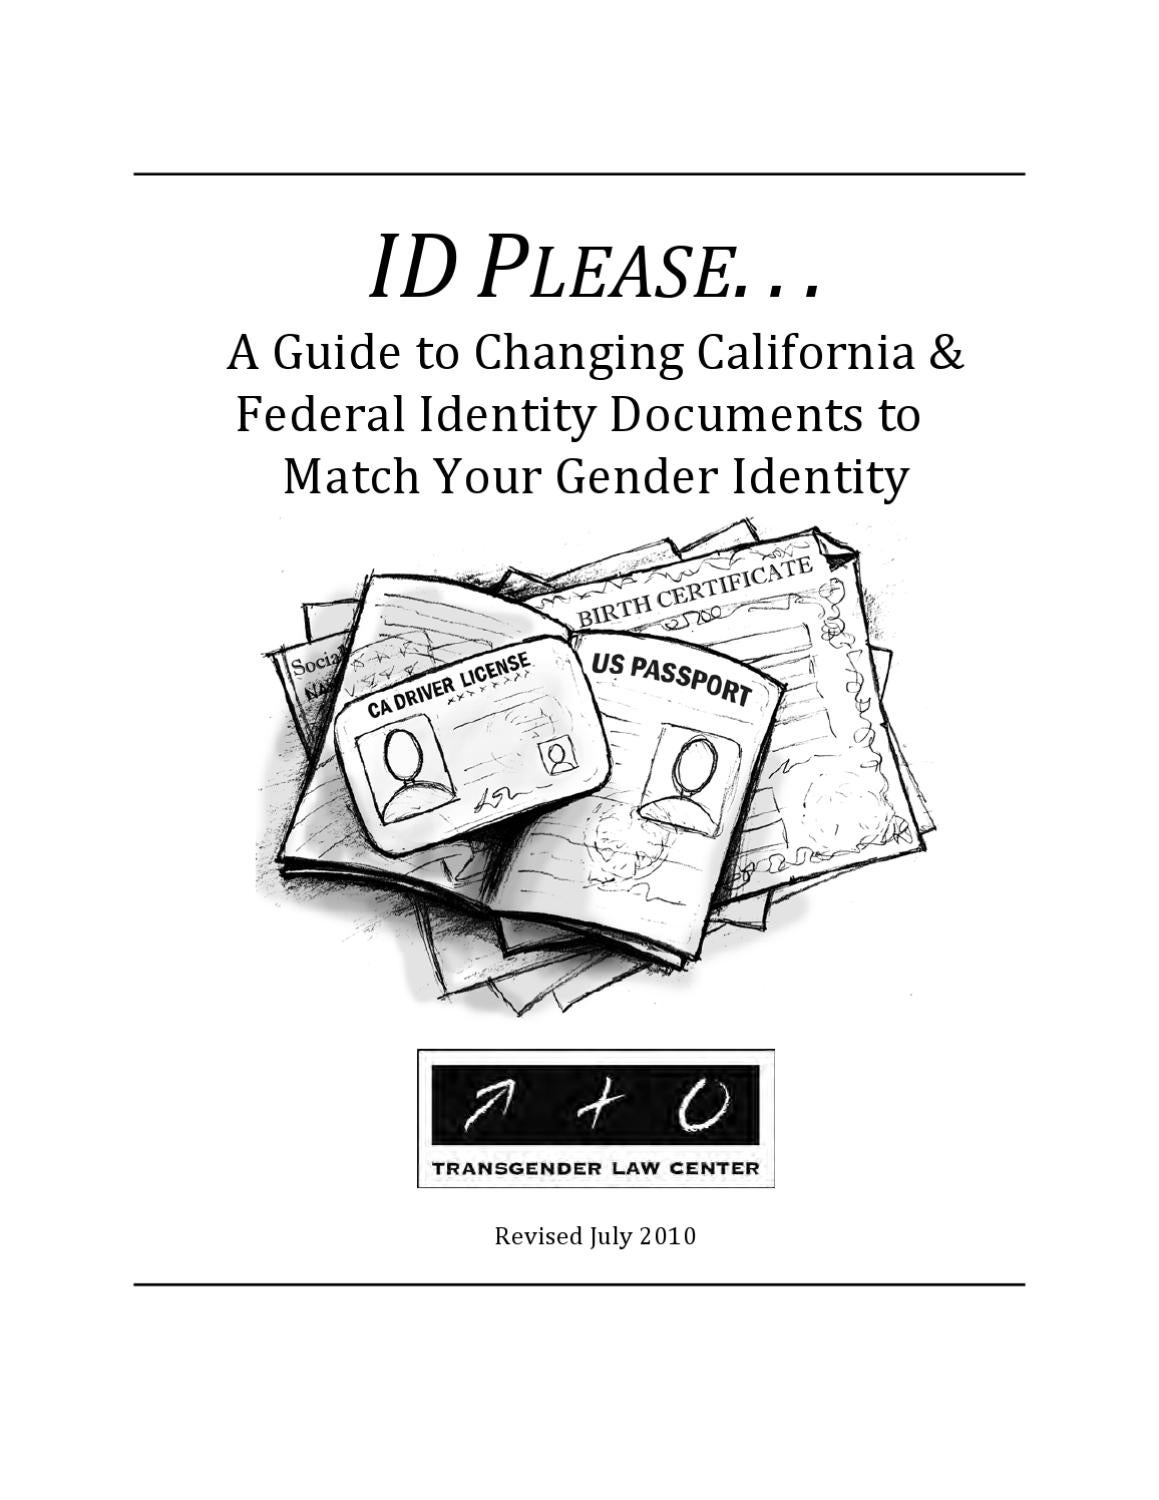 ID Please: A Guide to Changing California and Federal IDs